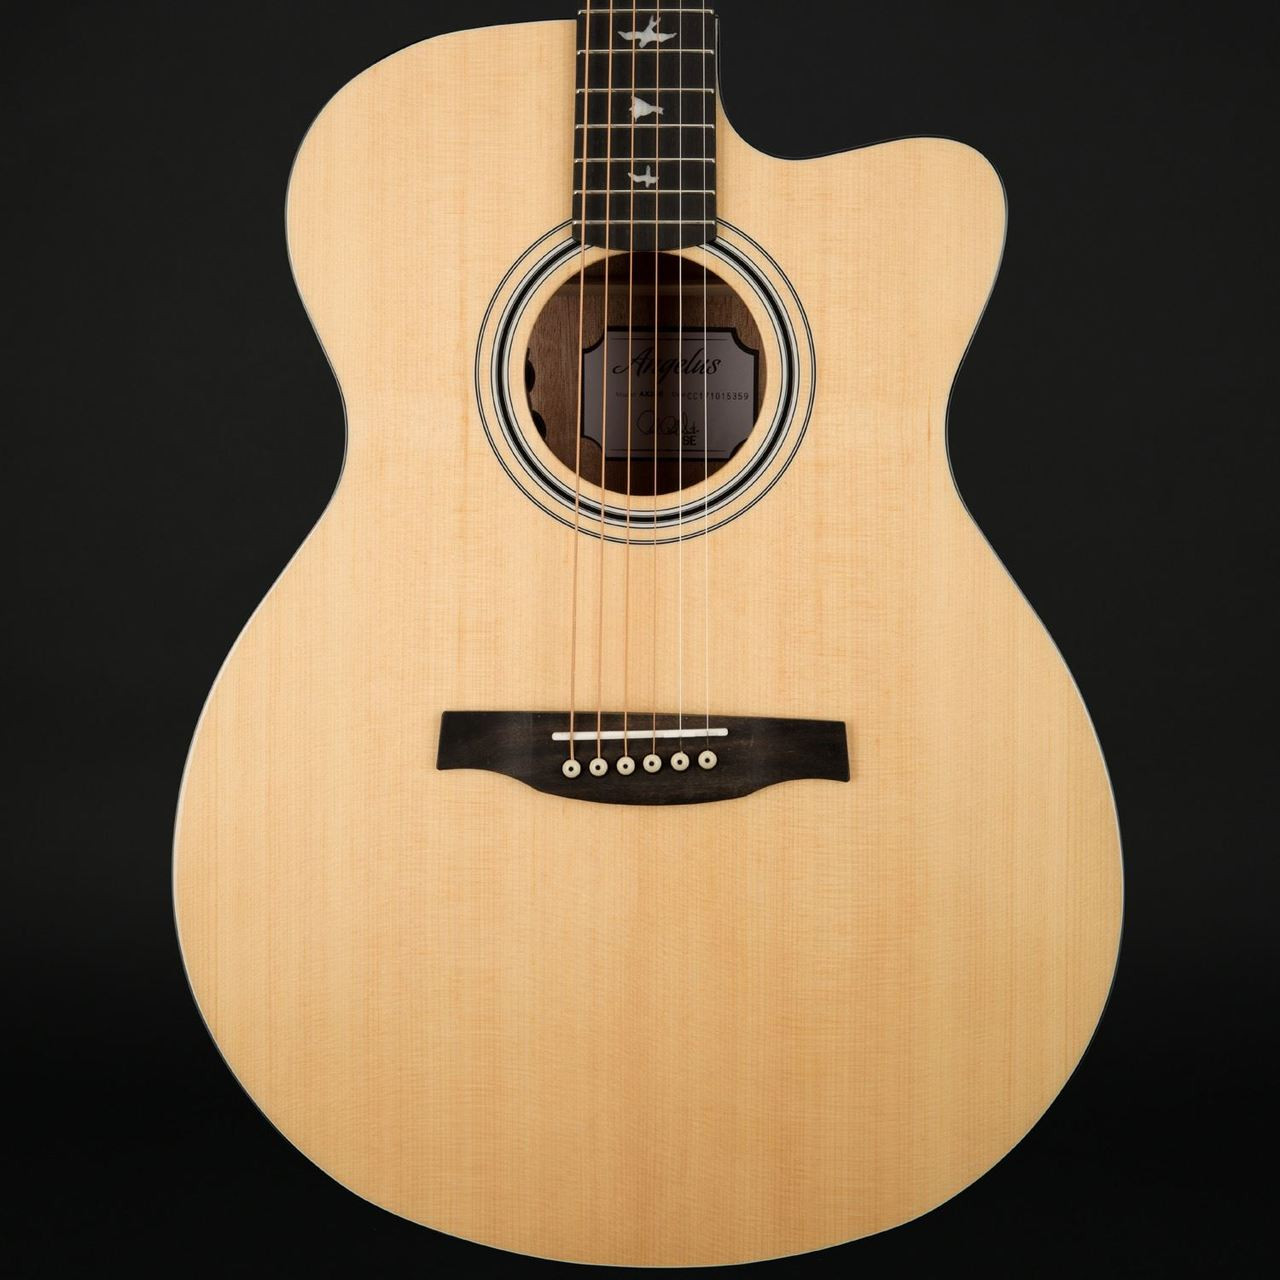 5ff337a545a PRS SE Angelus AXE20E Cutaway Electro Acoustic with Hard Case. Image 1.  Click to expand. Hover over image to zoom. Image 1 ...